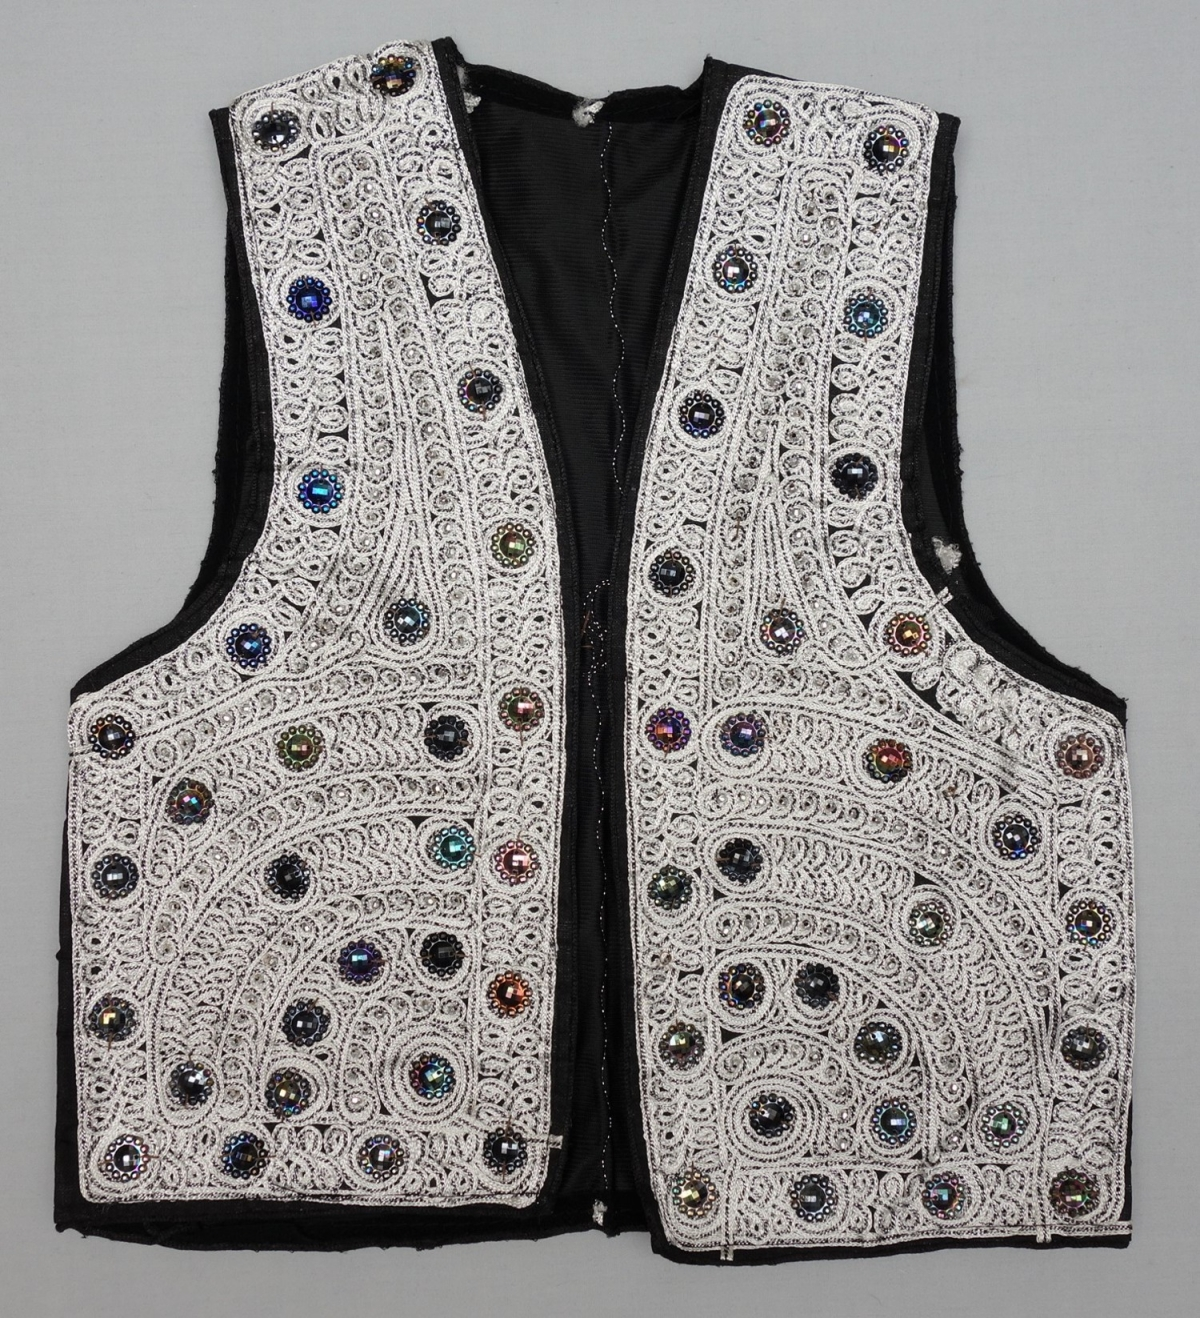 Waistcoat (waskat) from Kandahar, South Afghanistan. 2010.